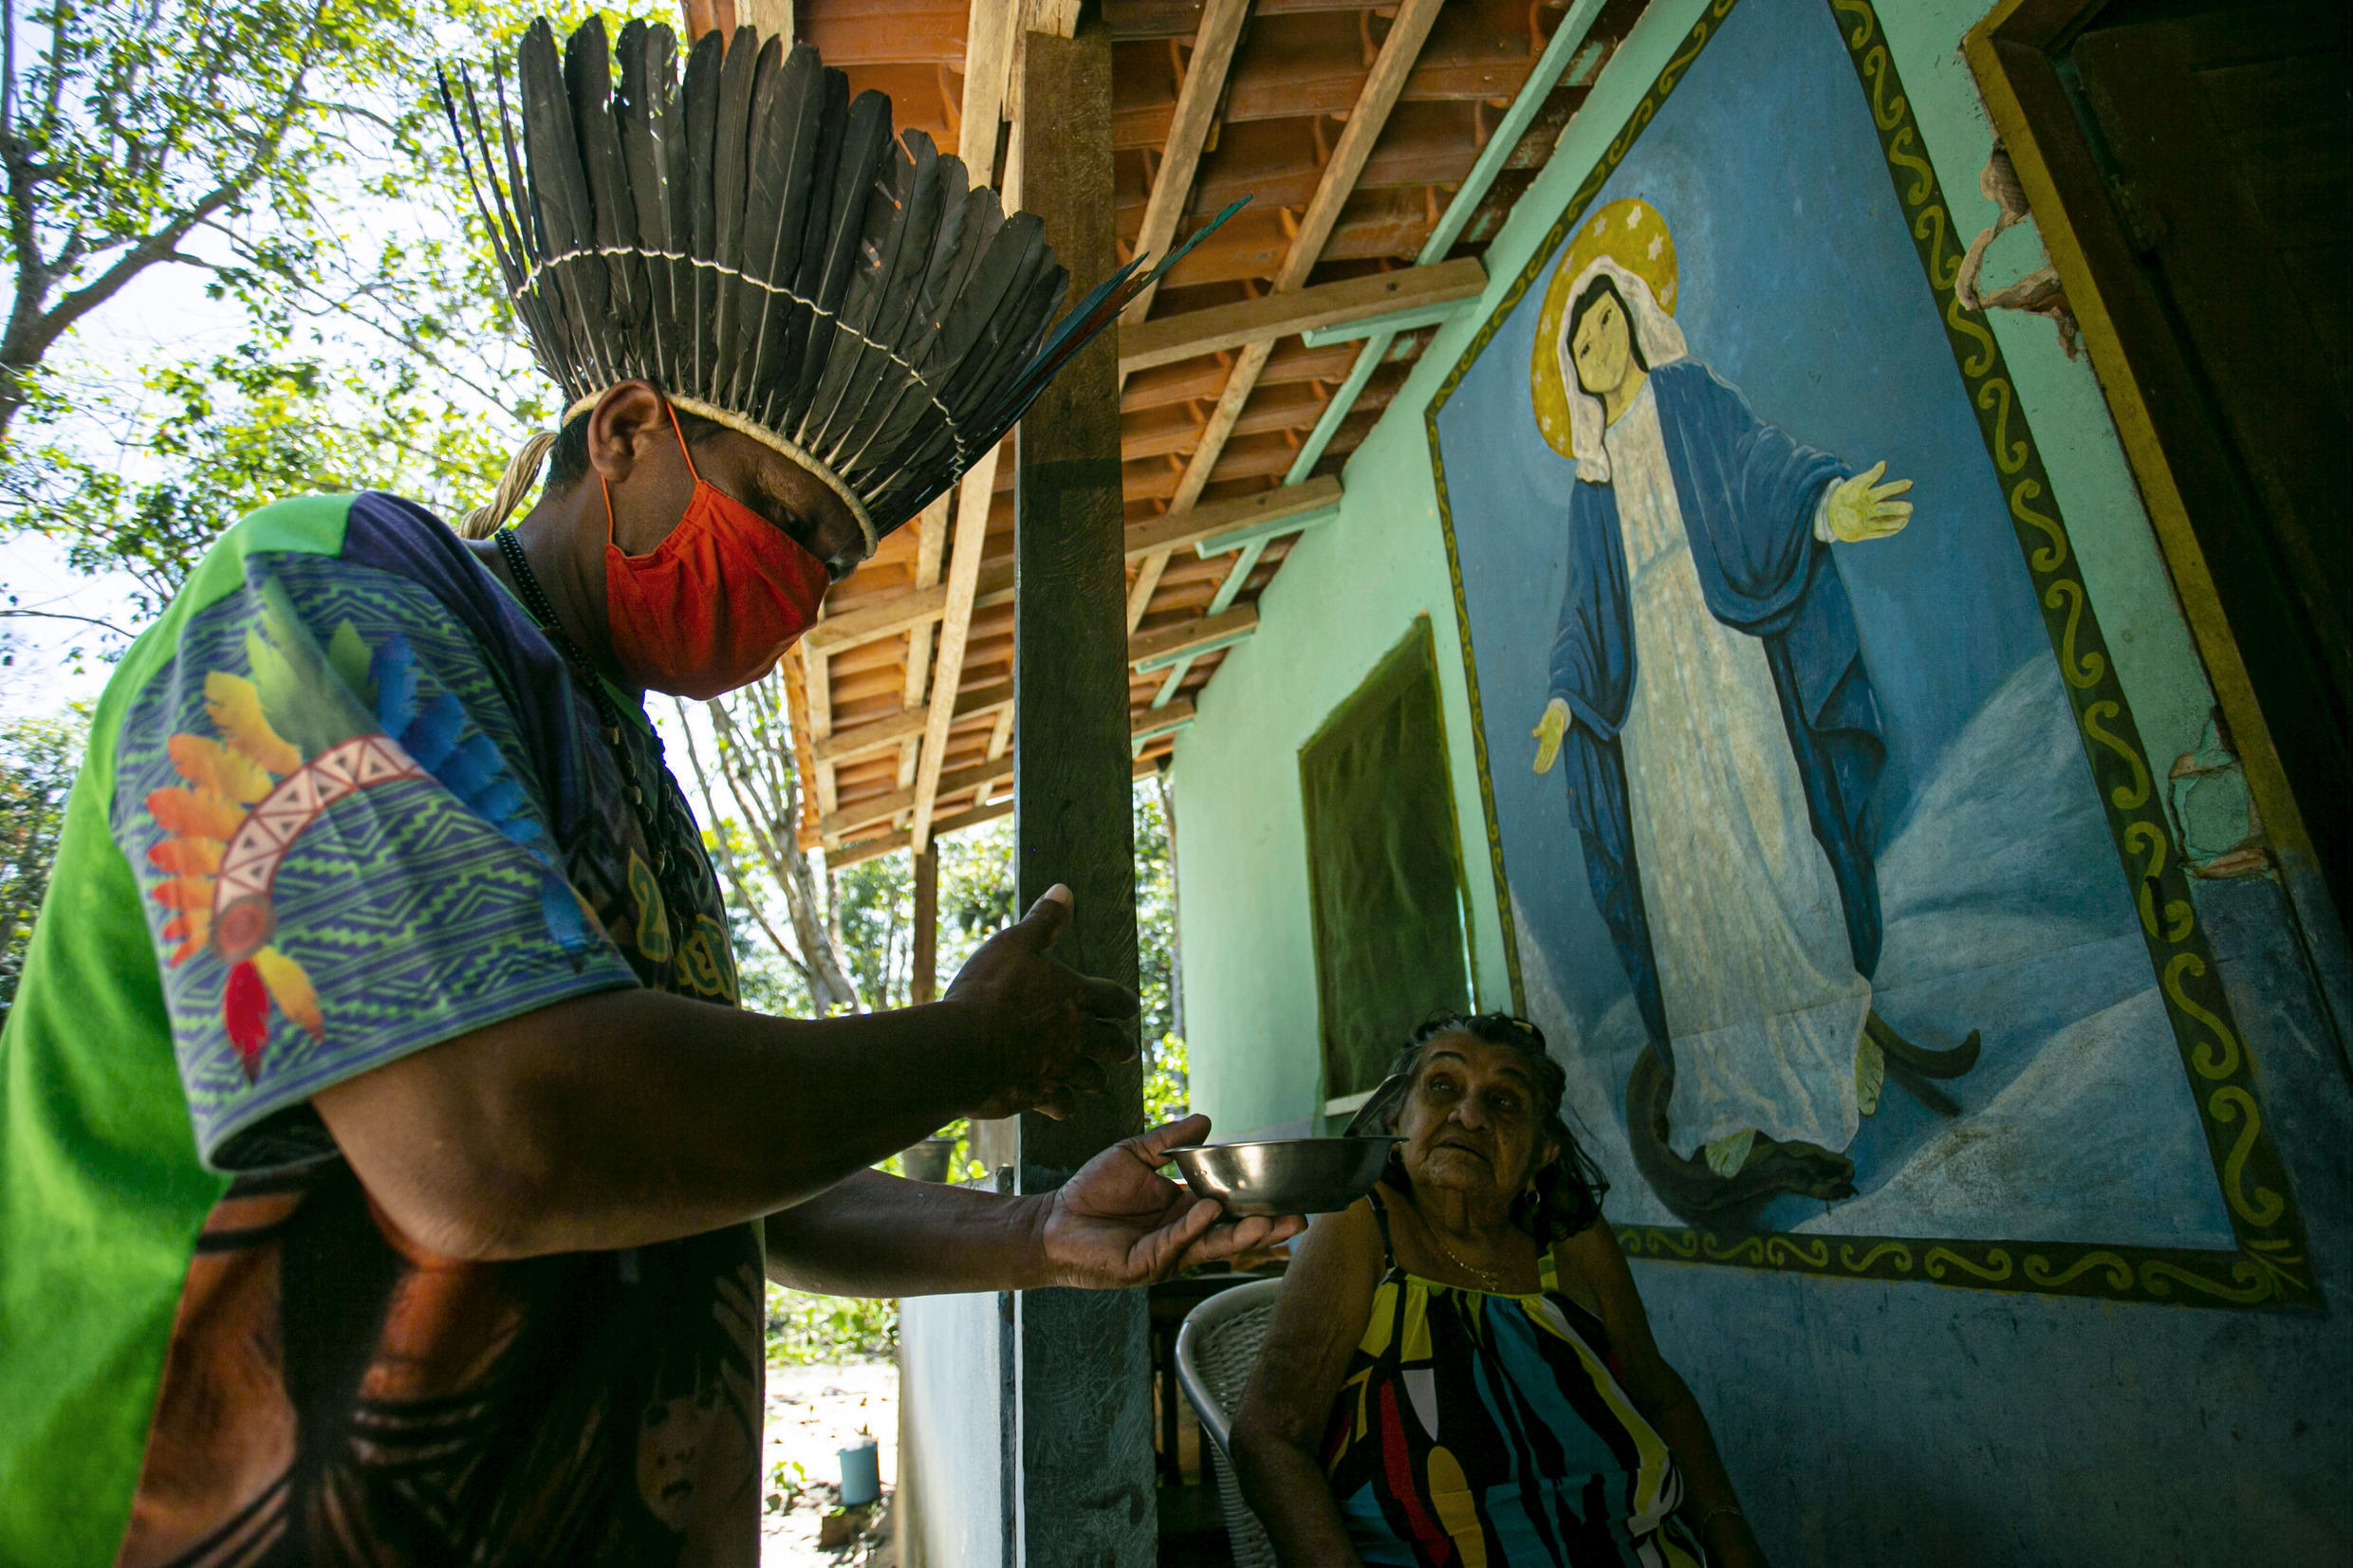 Chief Leno of the Kunaruara tribe delivers a natural medicine to a resident at his village beside the Tapajos River of the Santarem municipality in western Para state, Brazil, July 10, 2020.